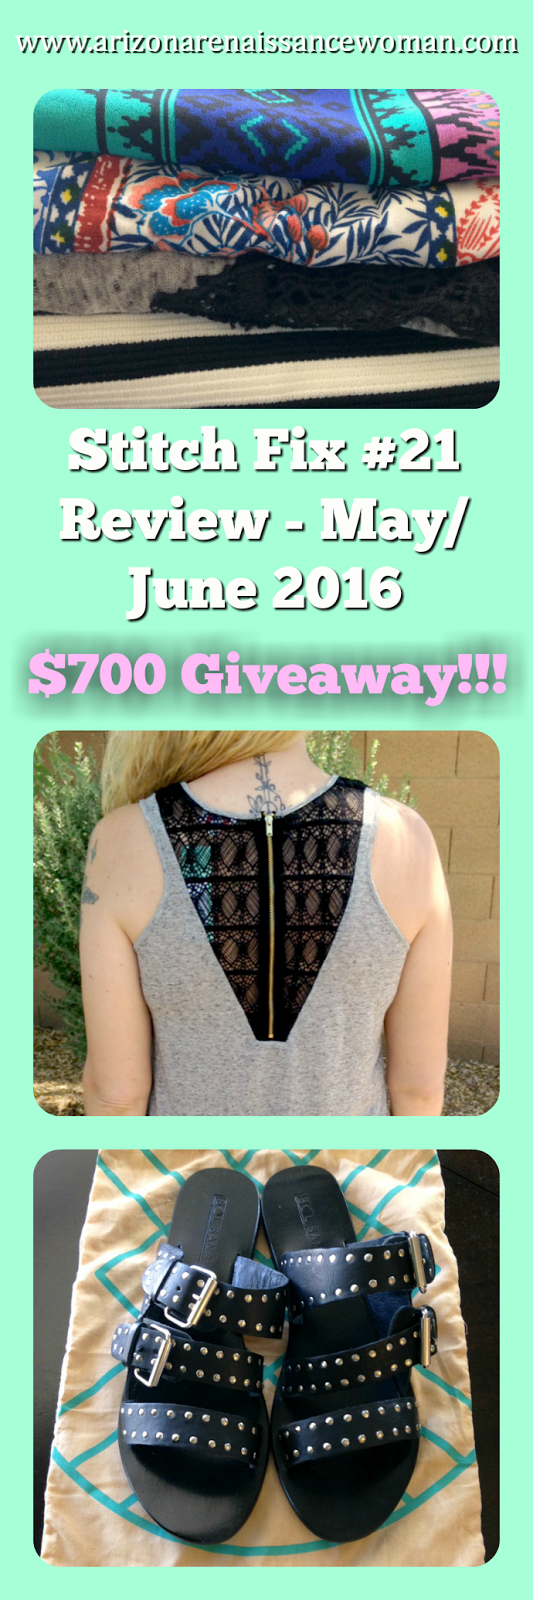 Stitch Fix Review - May/June 2016 - $700 Giveaway - Collage